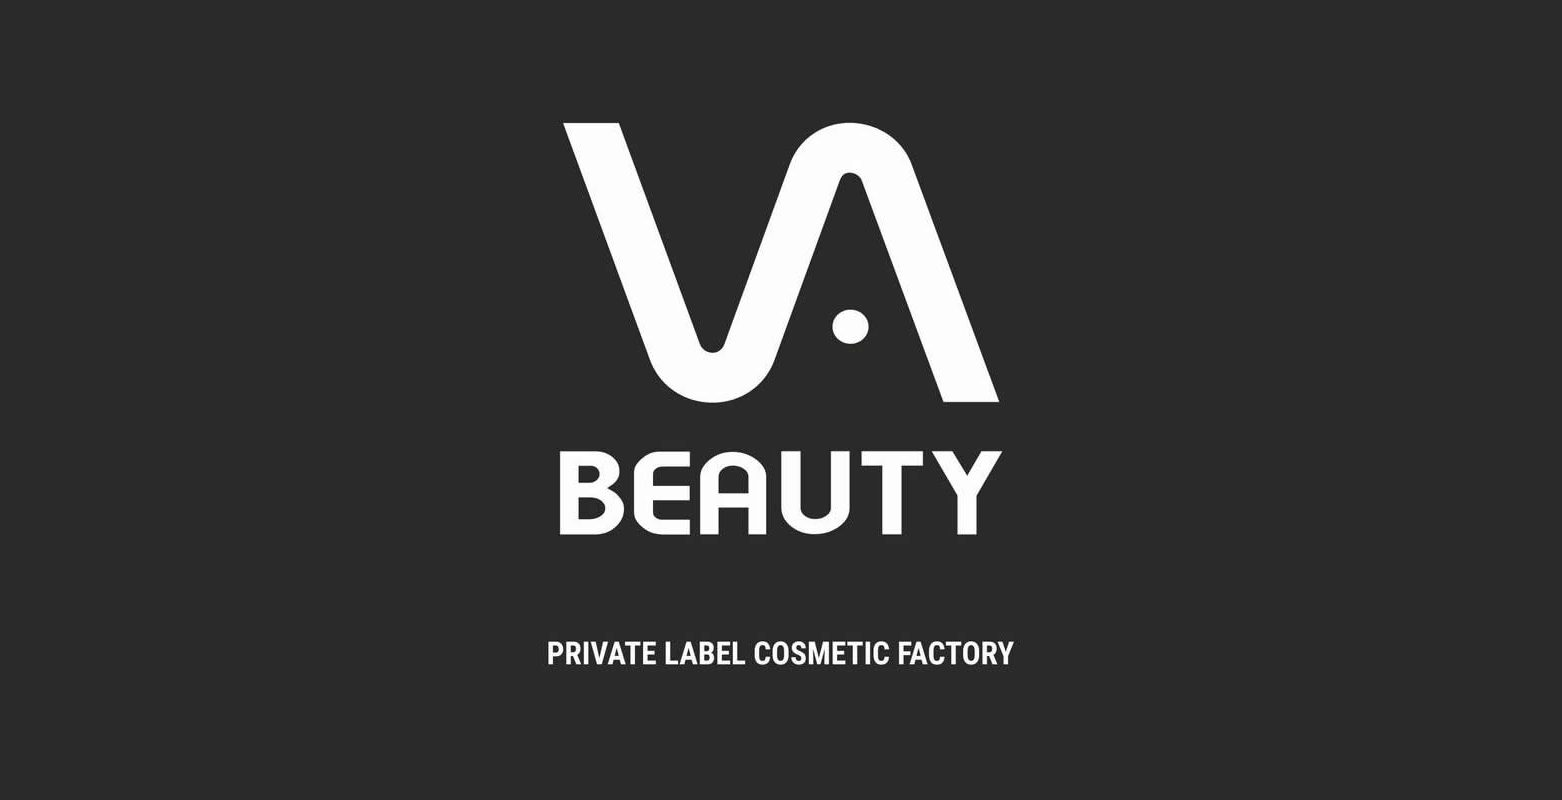 VA Beauty Private Label Cosmetic Factory